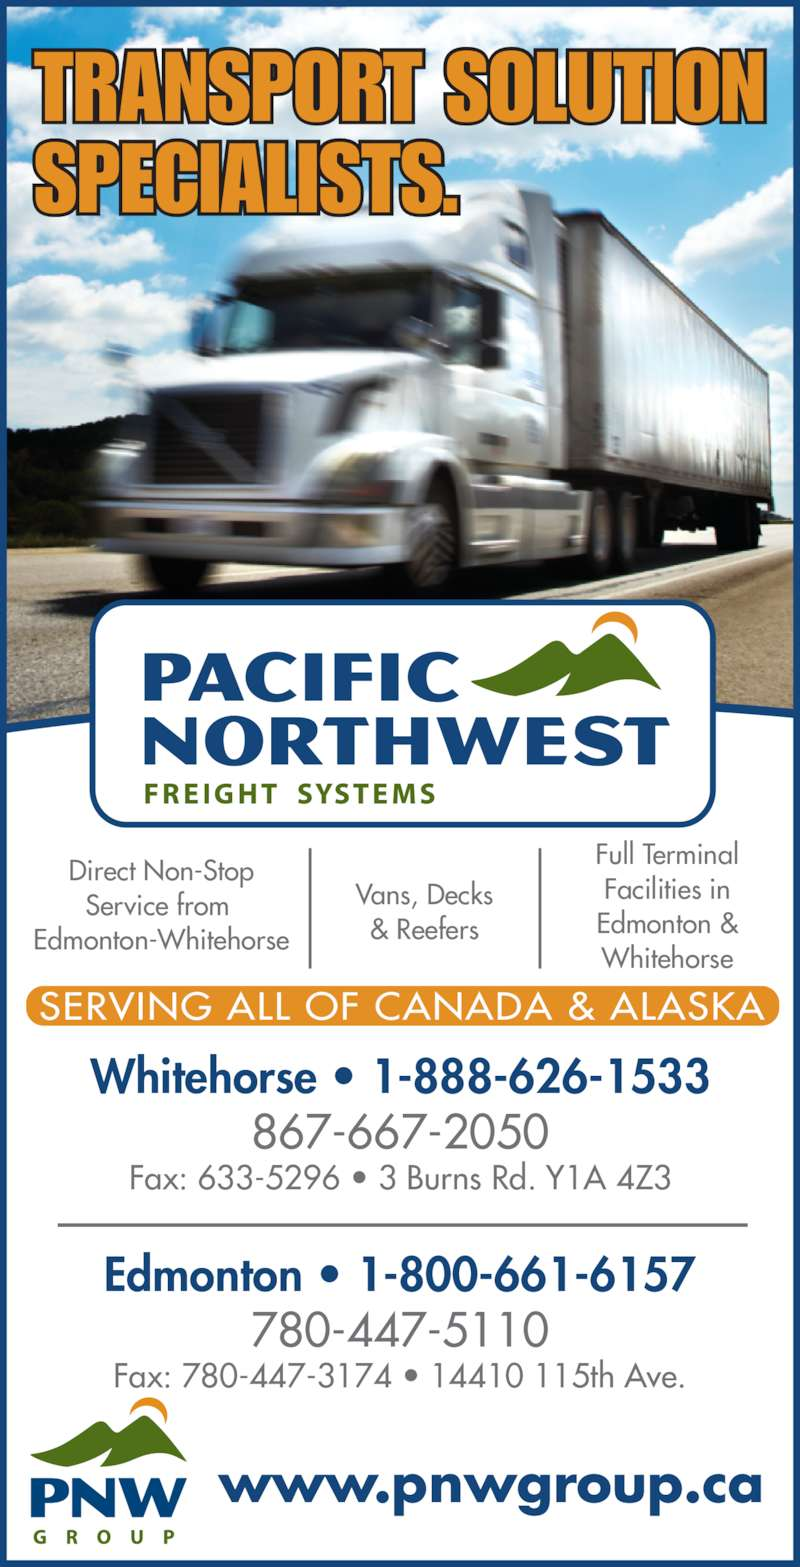 Pacific Northwest Freight Systems (867-667-2050) - Display Ad - Vans, Decks & Reefers Whitehorse • 1-888-626-1533 867-667-2050 Fax: 633-5296 • 3 Burns Rd. Y1A 4Z3 Edmonton • 1-800-661-6157 780-447-5110 Fax: 780-447-3174 • 14410 115th Ave. www.pnwgroup.ca TRANSPORT SOLUTION SPECIALISTS. SERVING ALL OF CANADA & ALASKA Full Terminal Facilities in Edmonton & Whitehorse Direct Non-Stop Service from  Edmonton-Whitehorse